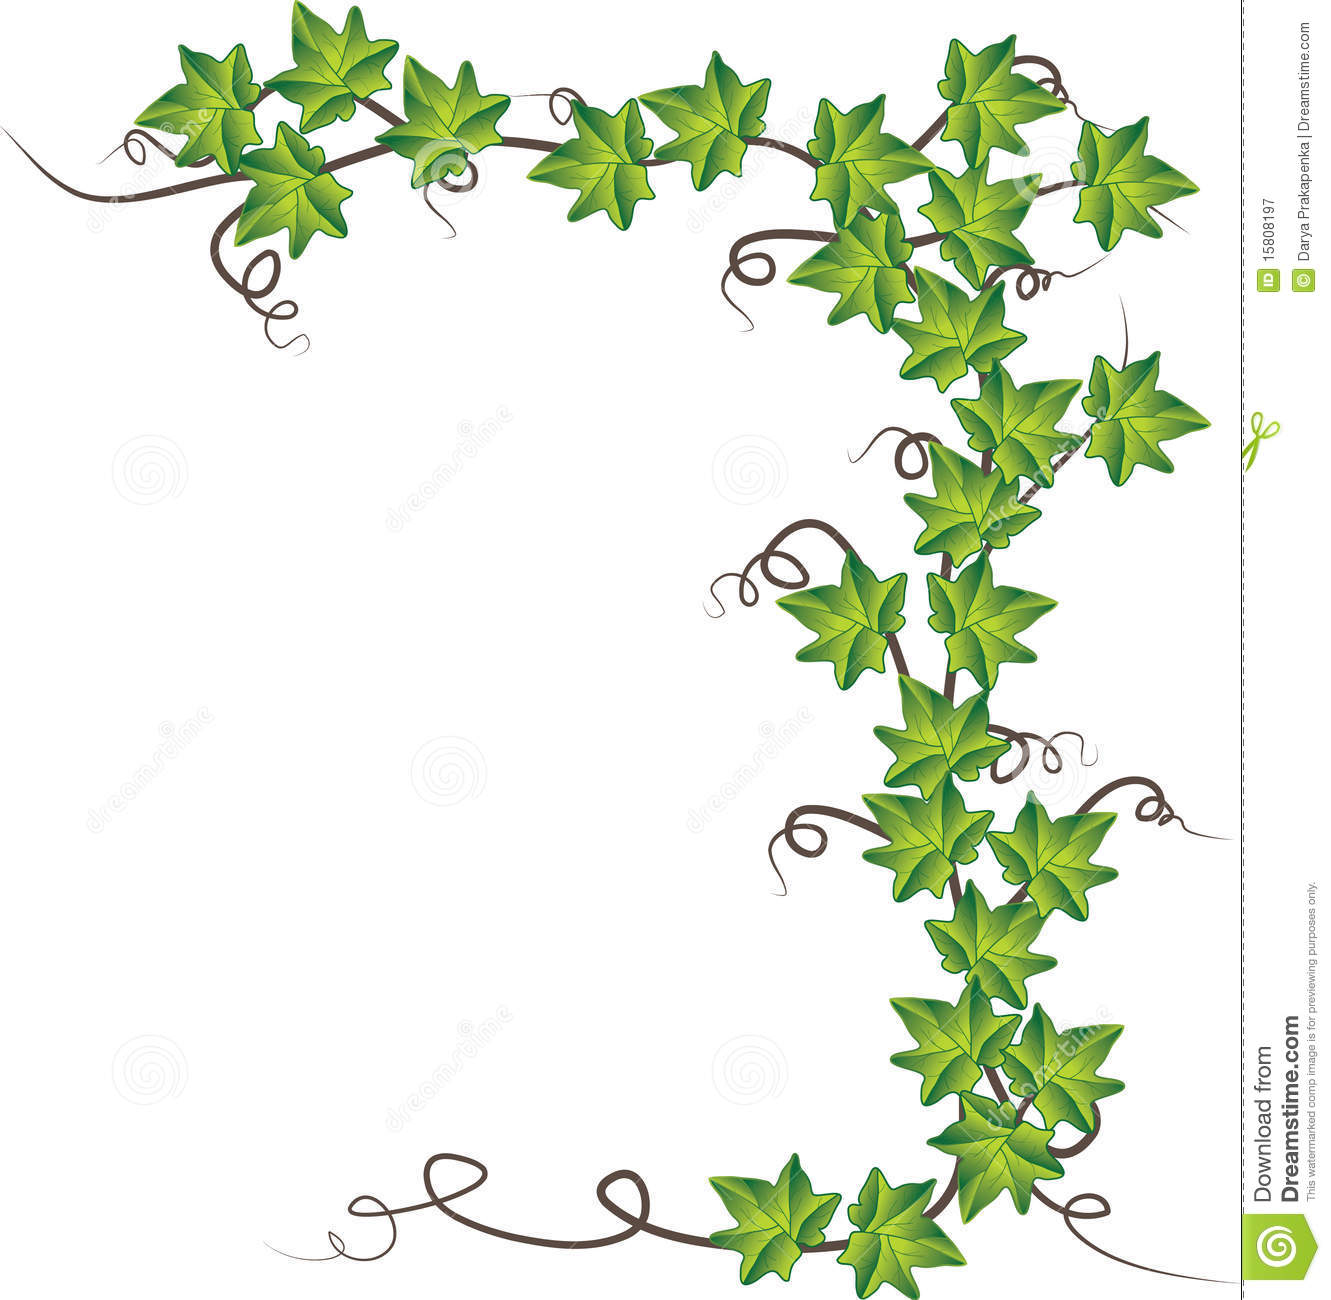 Green Ivy Vector Illustration Royalty Free Stock Photography Image 15808197